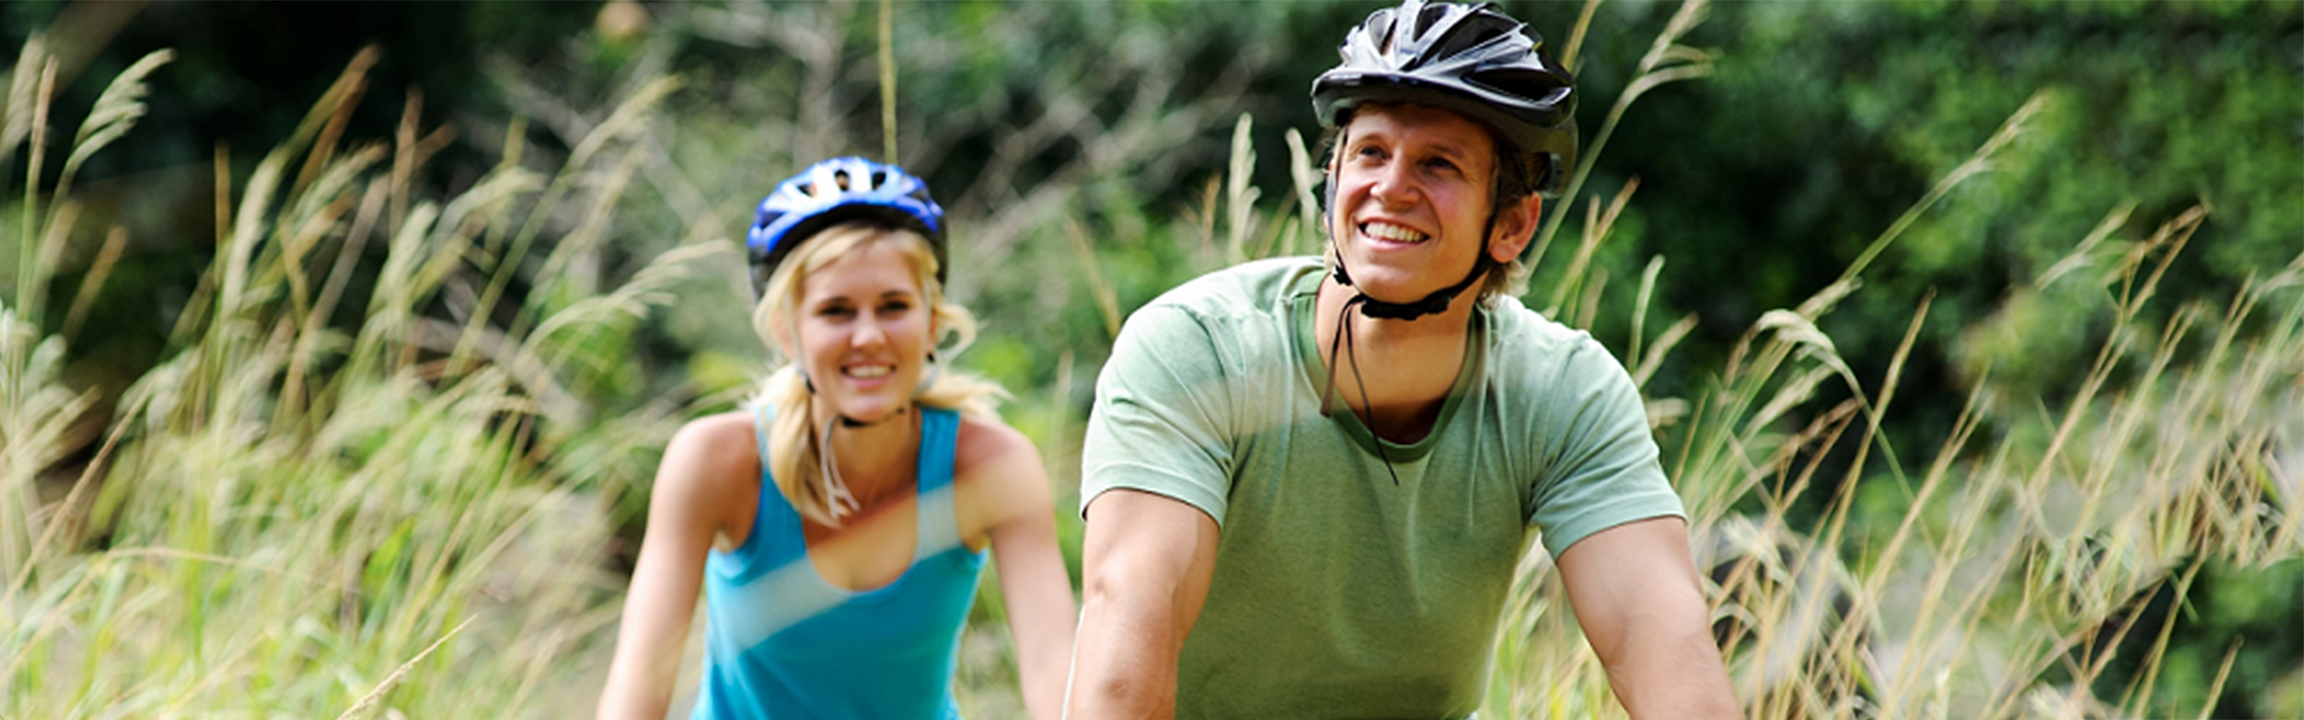 A man and a woman smile gleefully as they ride their bicycles in a field.